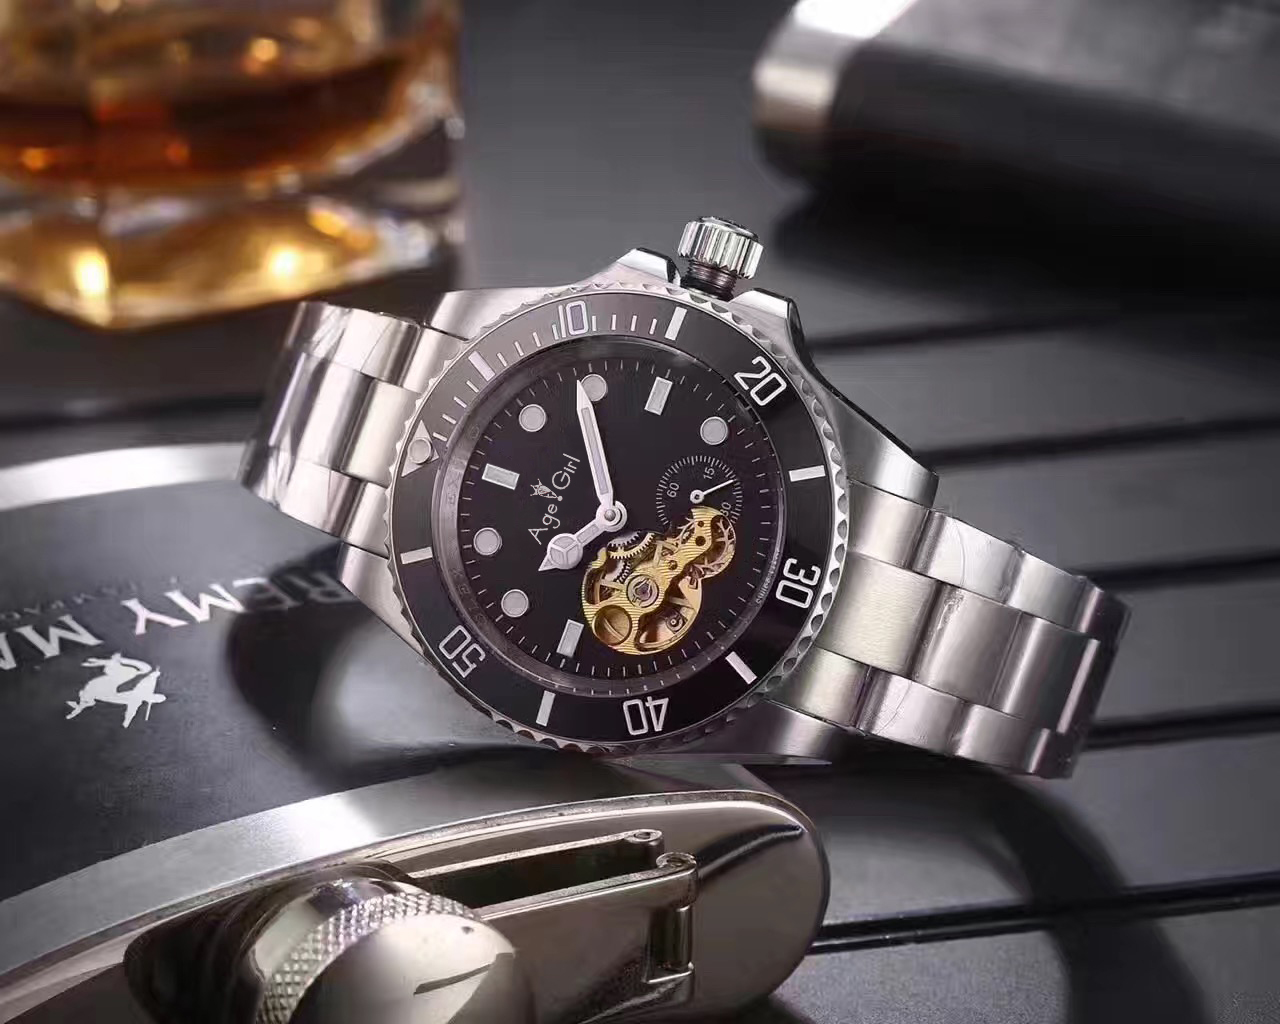 Luxury Brand New Men Automatic Mechanical Stainless Steel Ceramic Sapphire Watch Waterproof Tourbillion Skeleton Glass Back AAA+Luxury Brand New Men Automatic Mechanical Stainless Steel Ceramic Sapphire Watch Waterproof Tourbillion Skeleton Glass Back AAA+